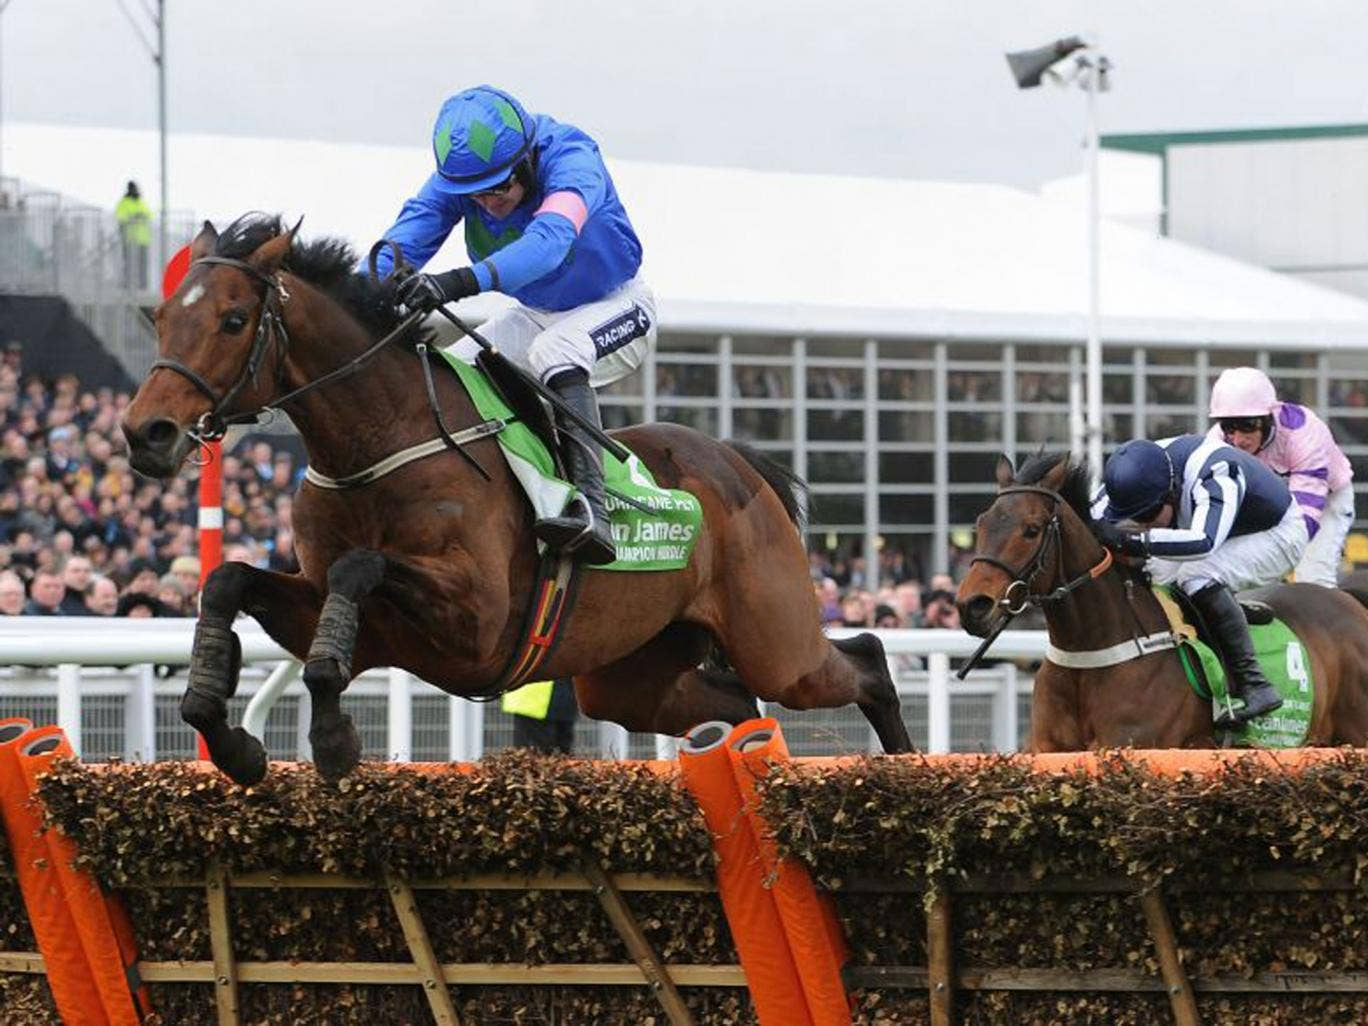 Hurricane Fly, with Ruby Walsh up, jumps the last flight on his way to victory in the Champion Hurdle